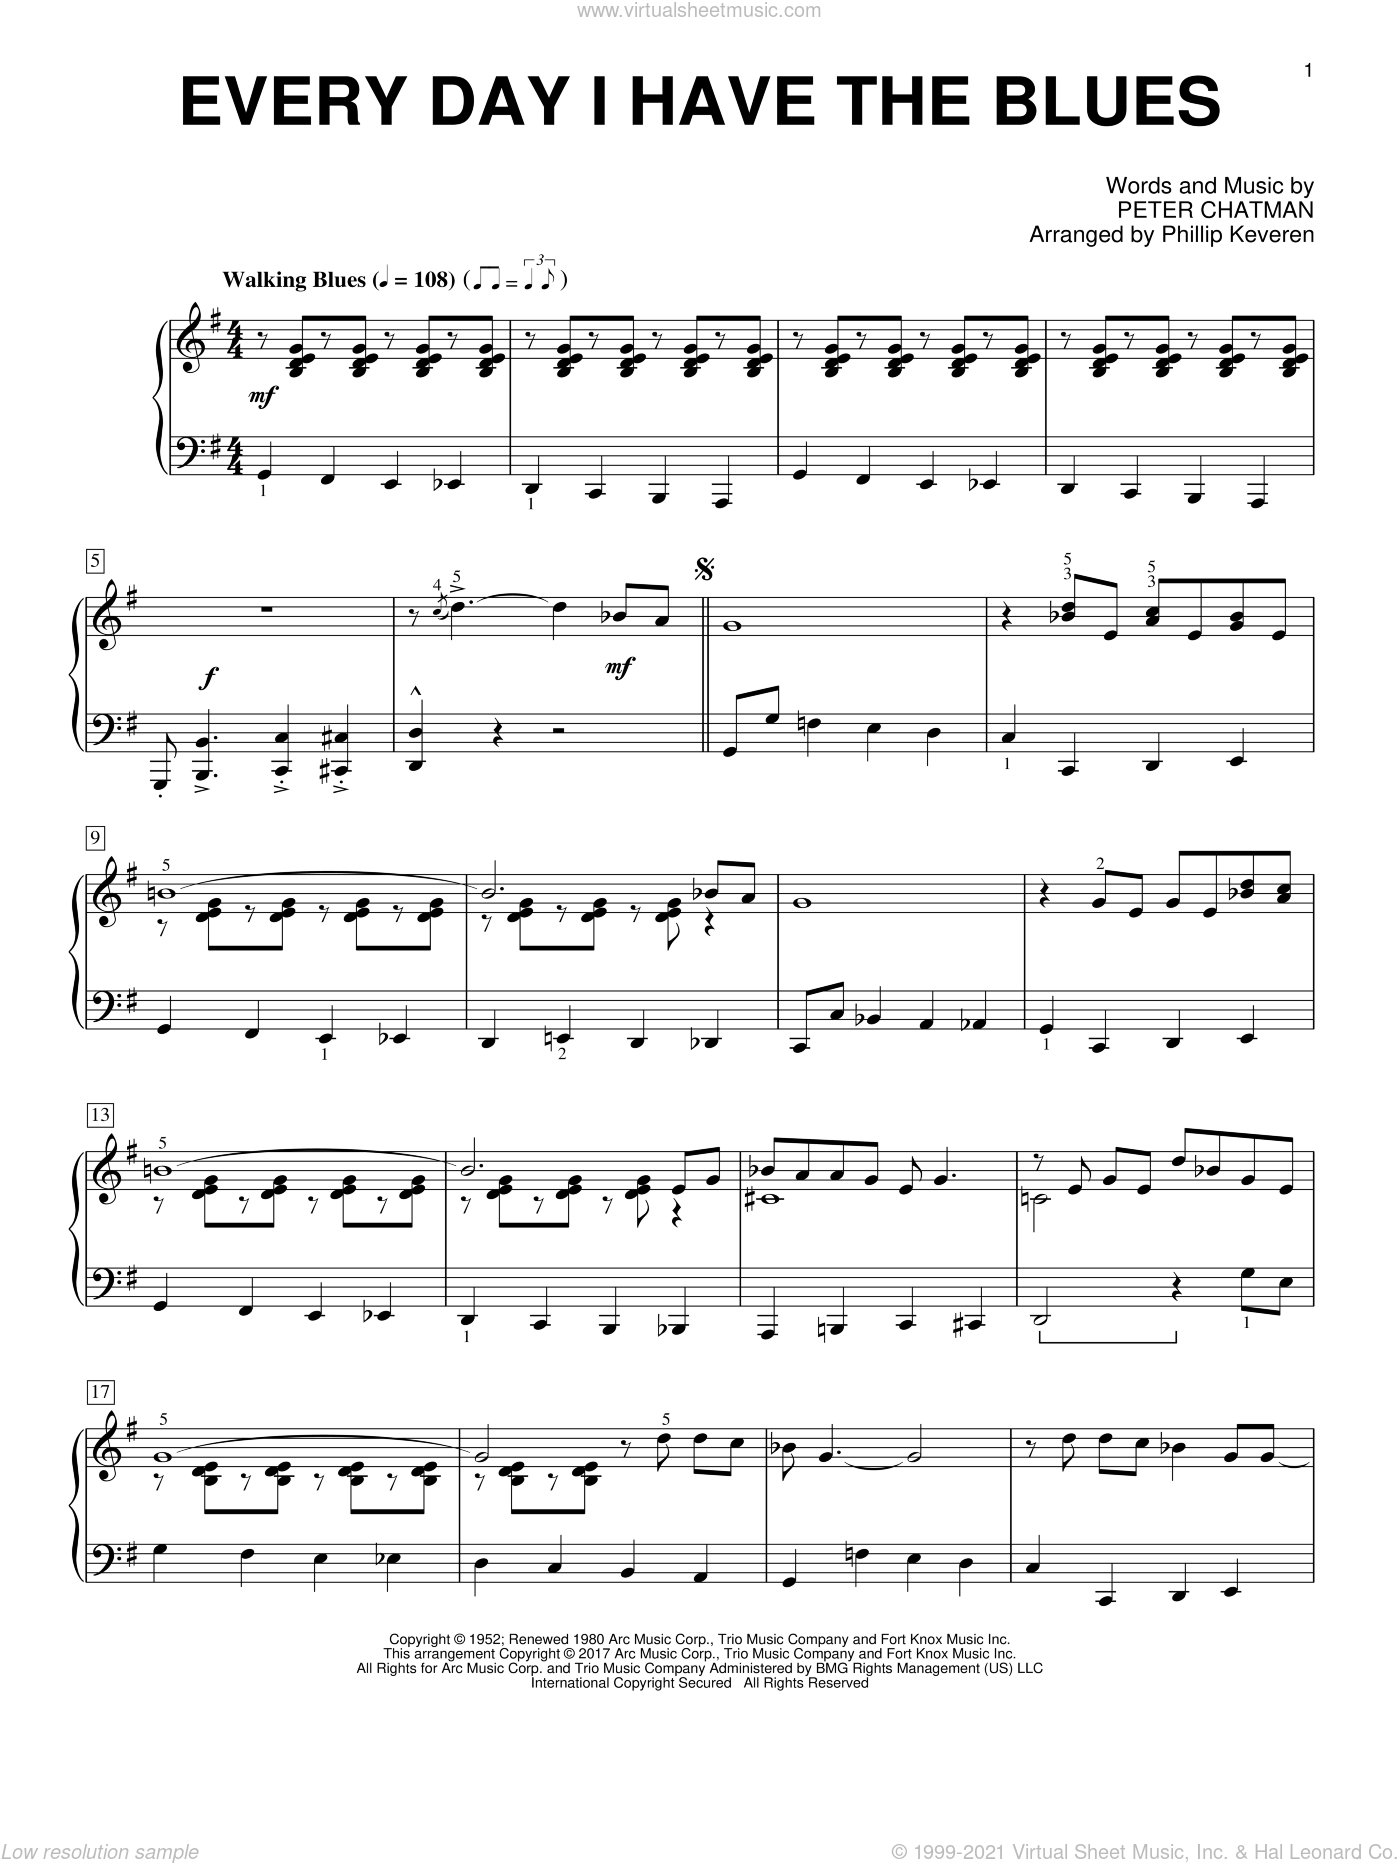 Every Day I Have The Blues sheet music for piano solo by Peter Chatman, Phillip Keveren and B.B. King, intermediate skill level